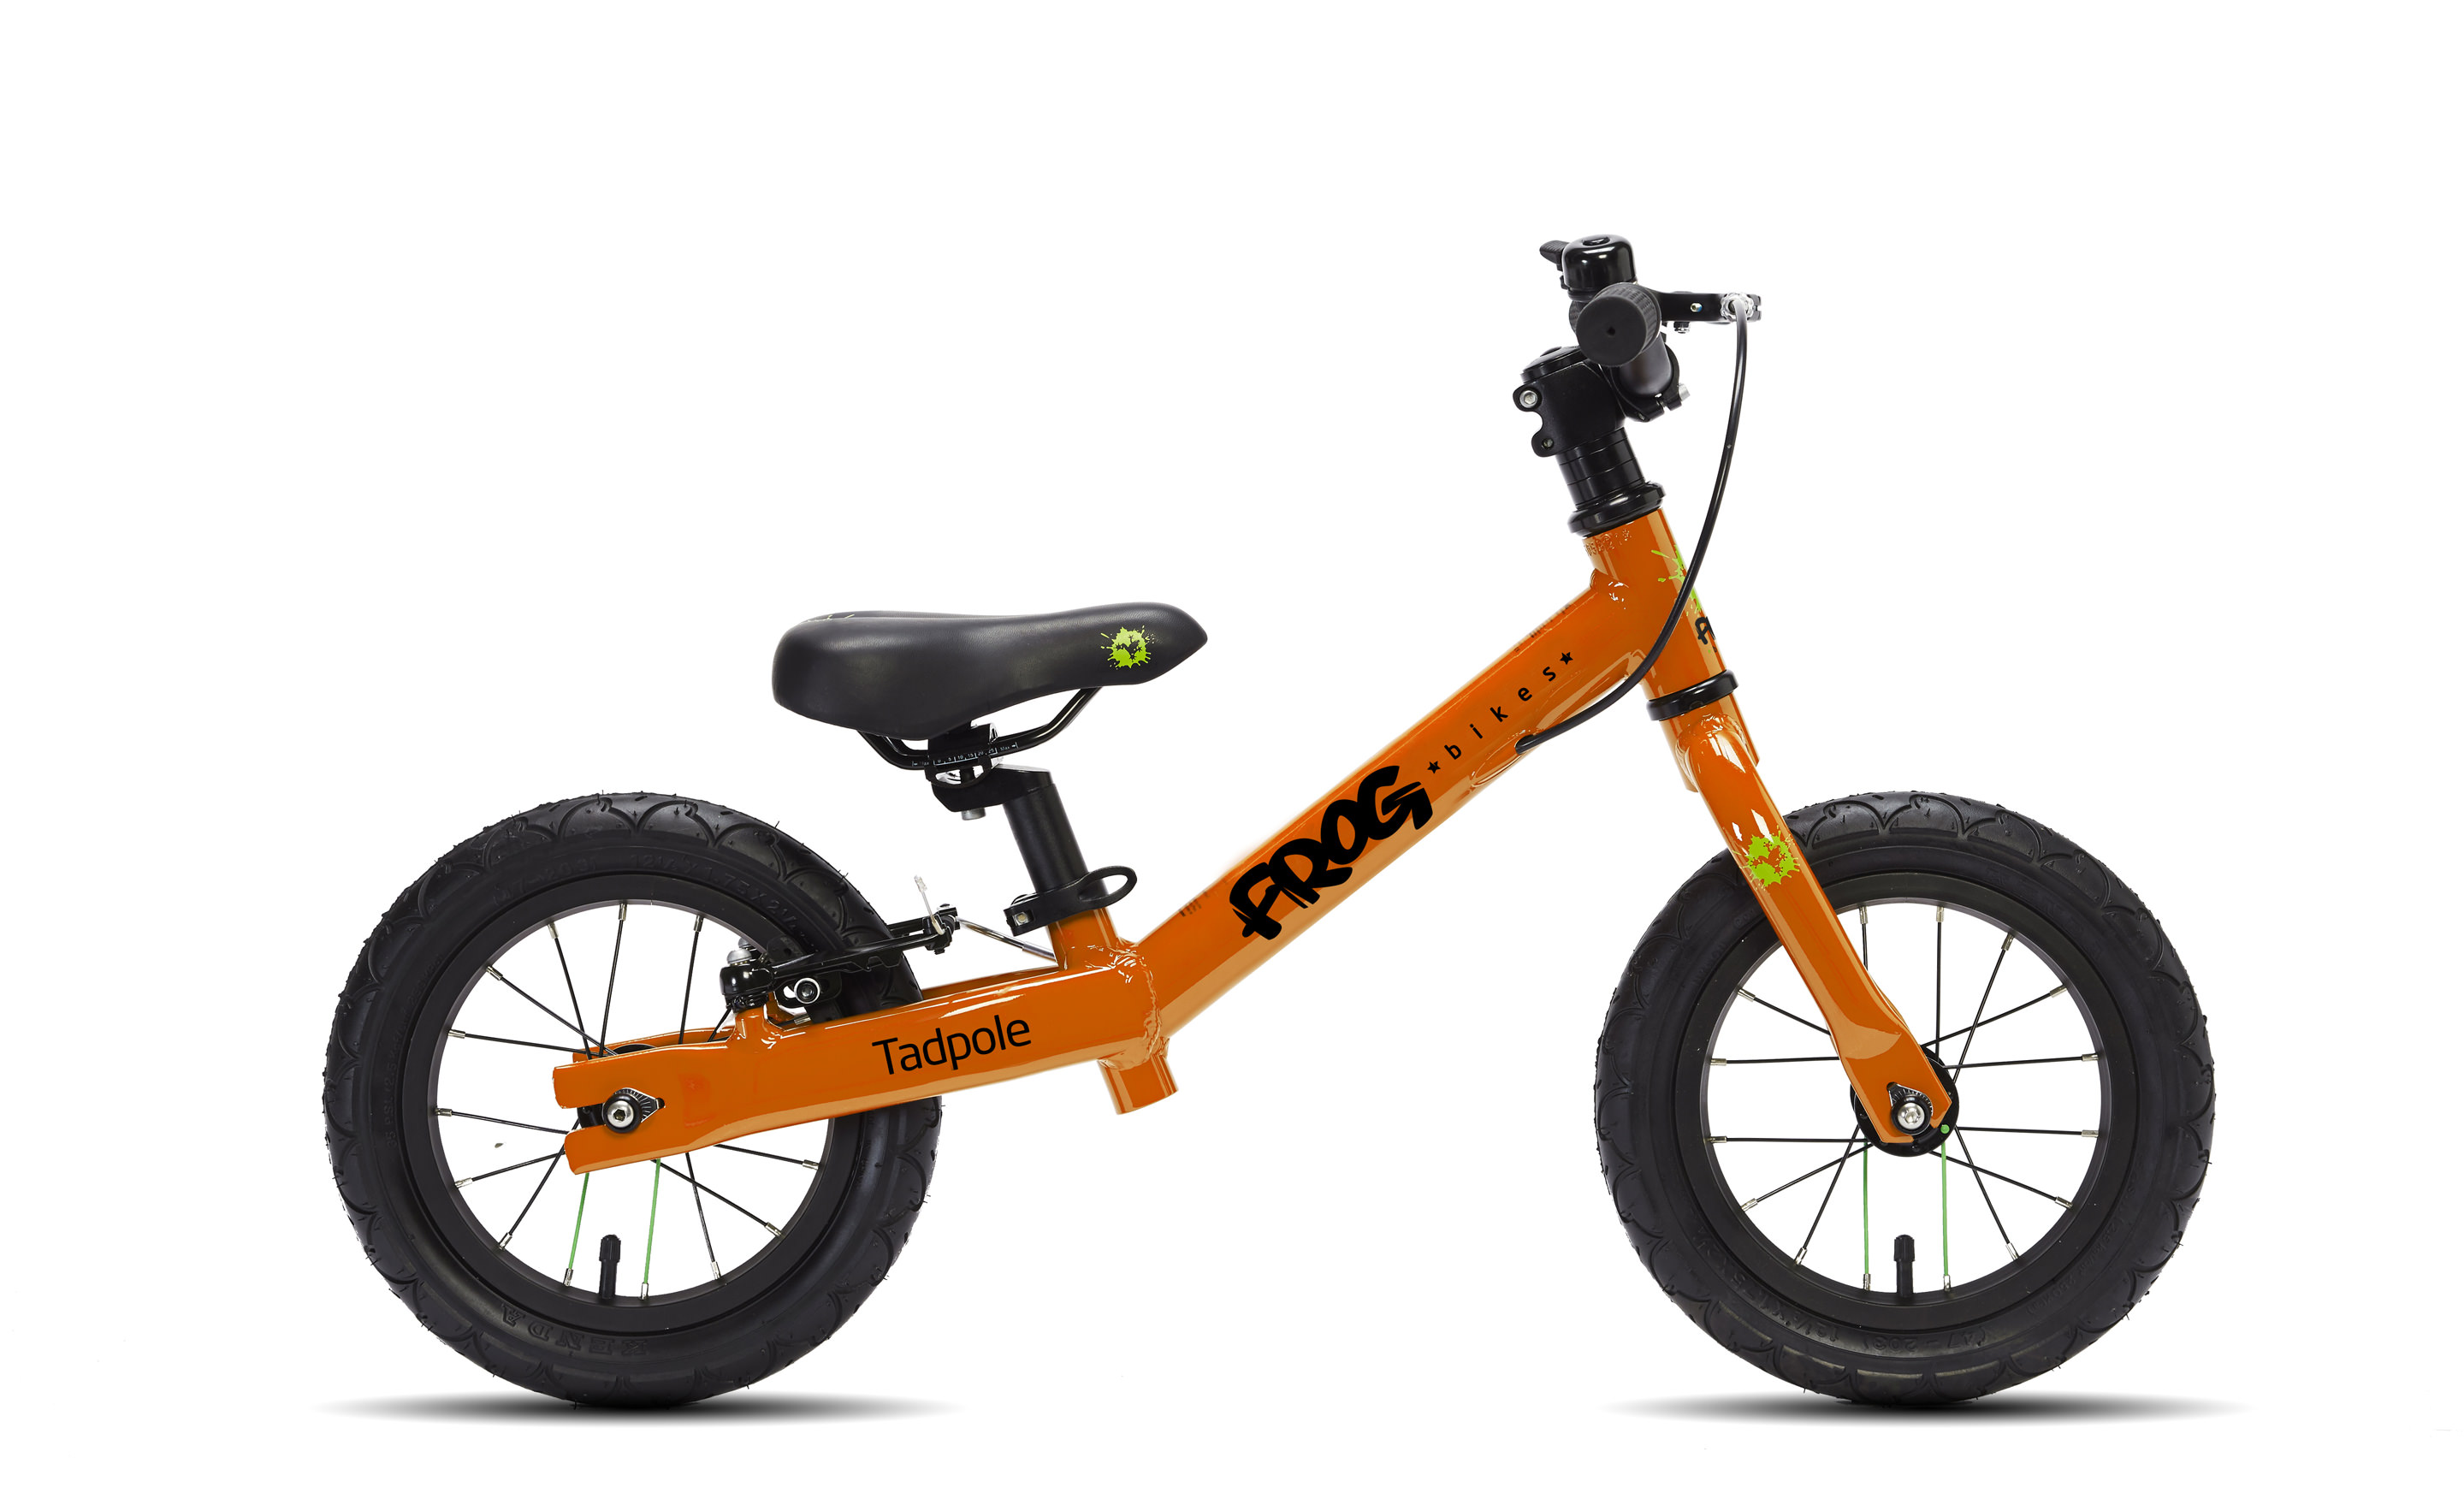 Tadpole Orange | Bouticycle